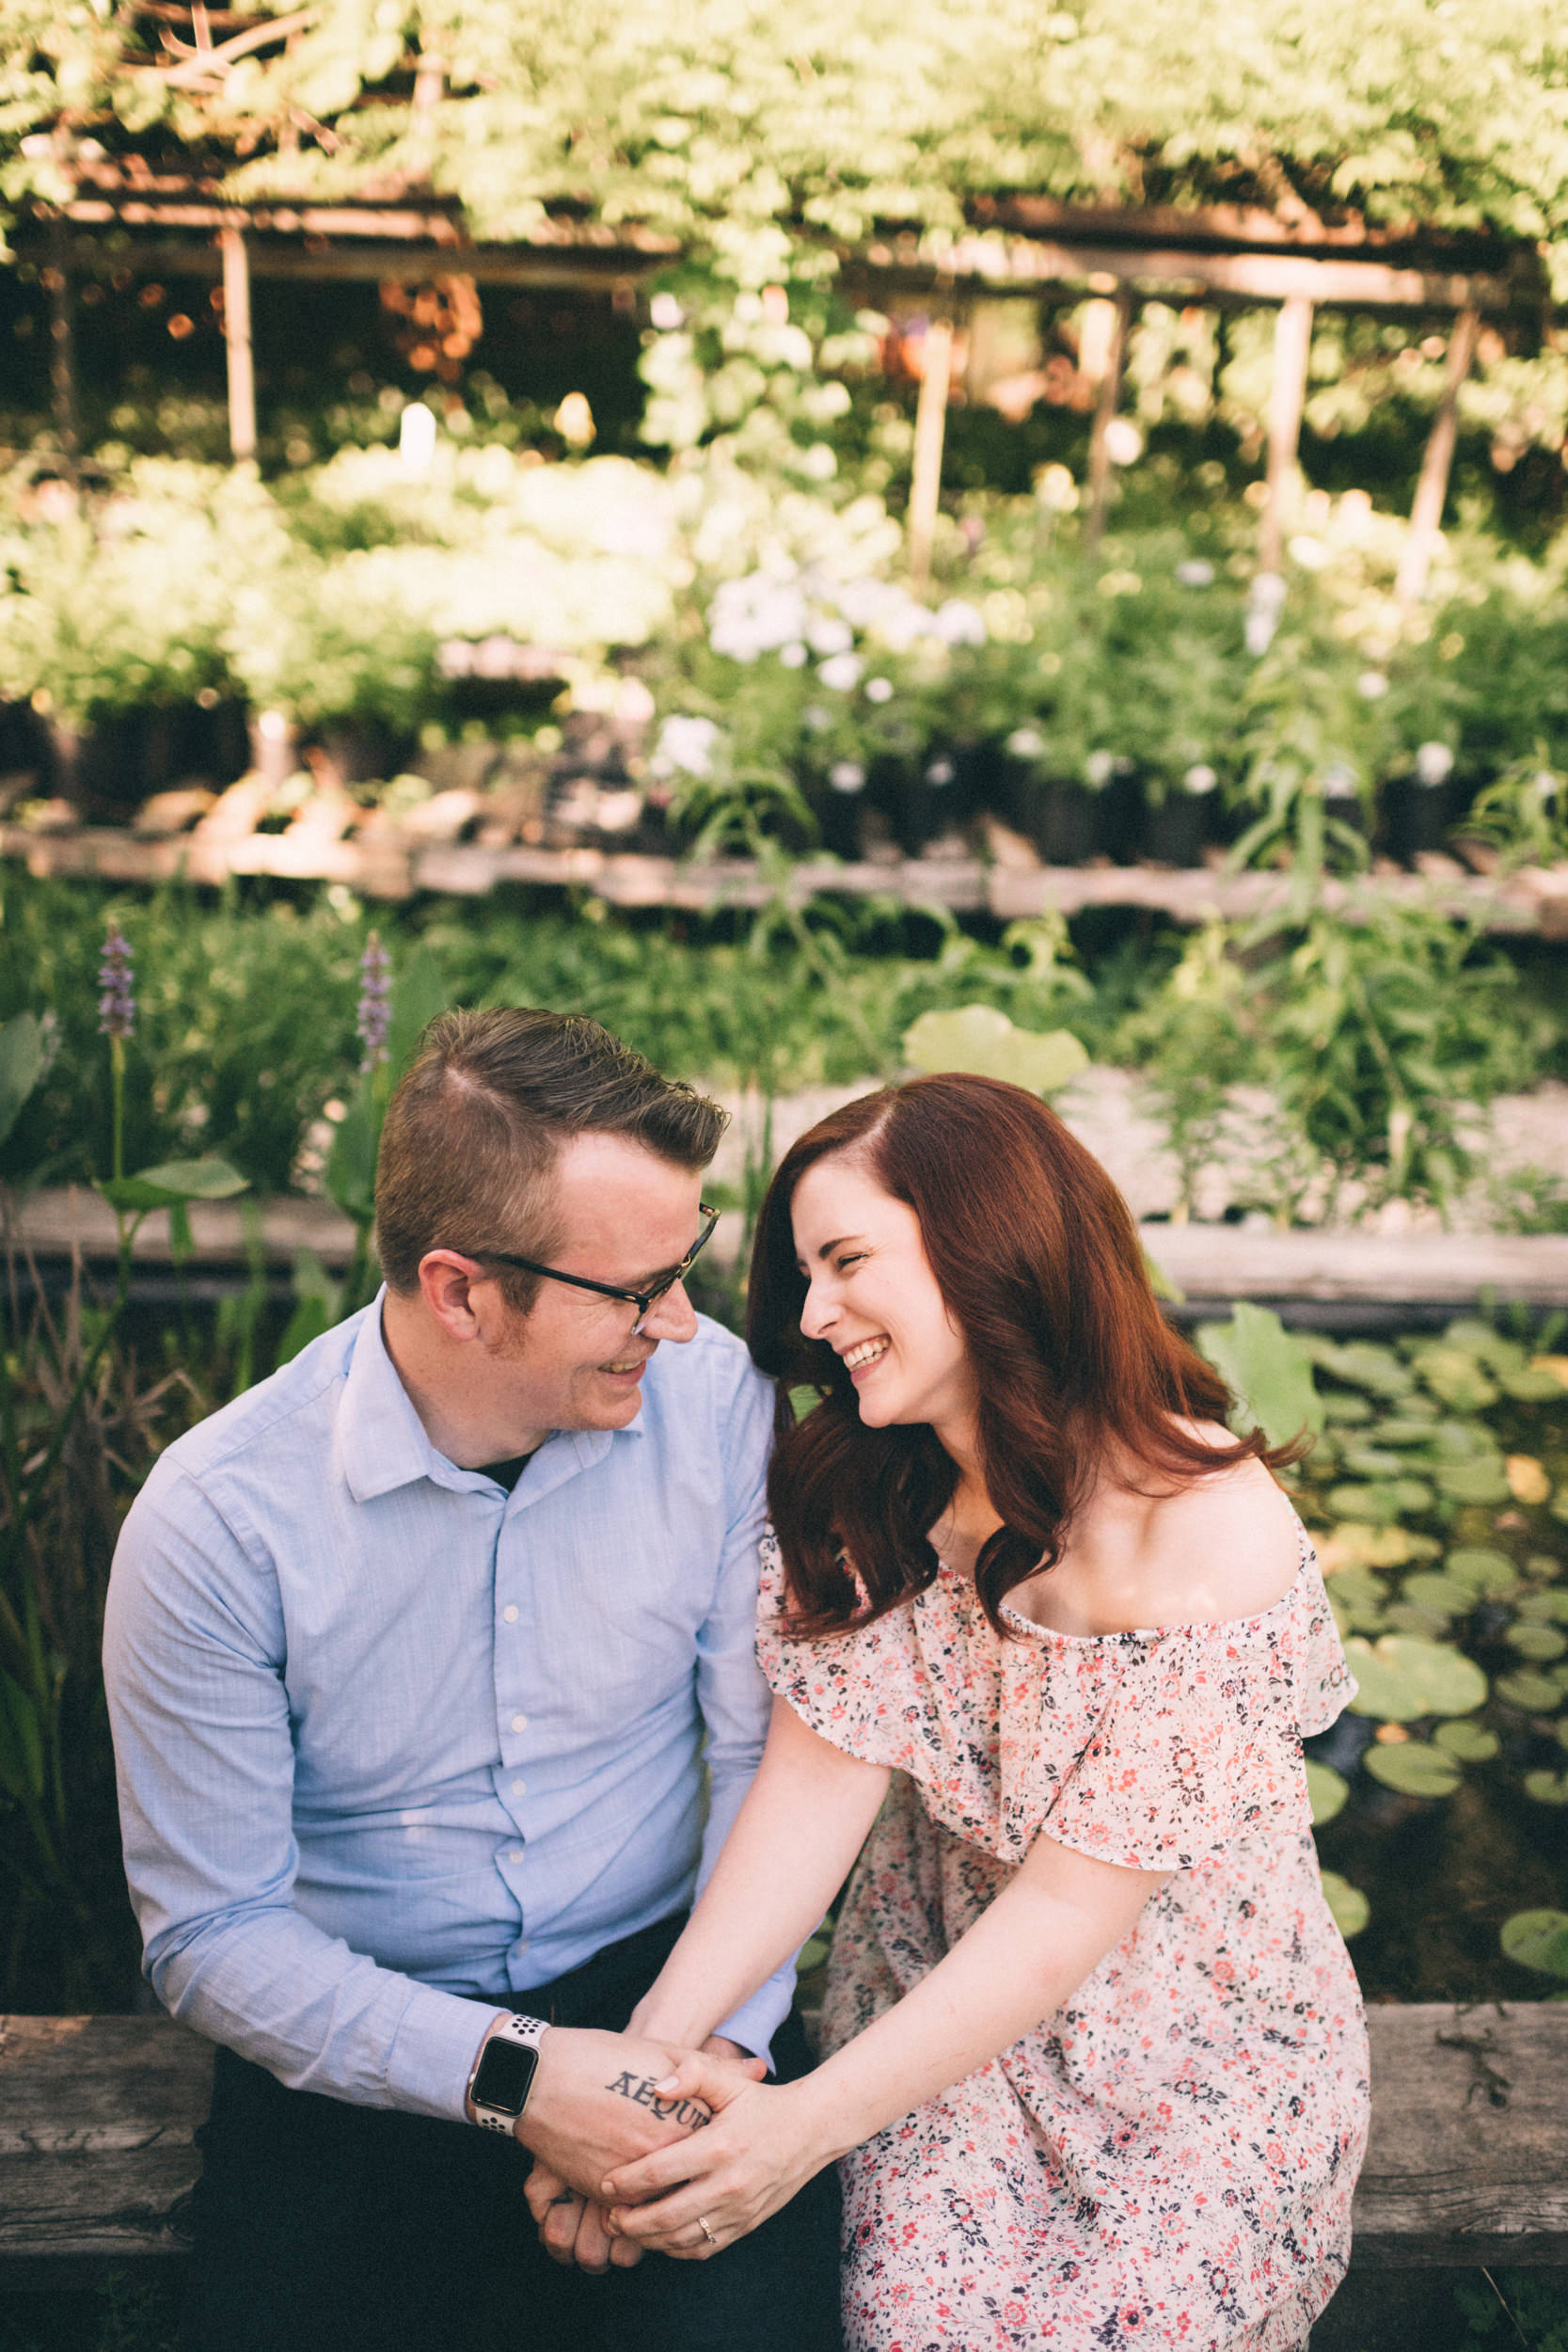 stephanie-brandon-sarah-katherine-davis-photographer-greenhouse-engagement-session-kentucky-163.jpg